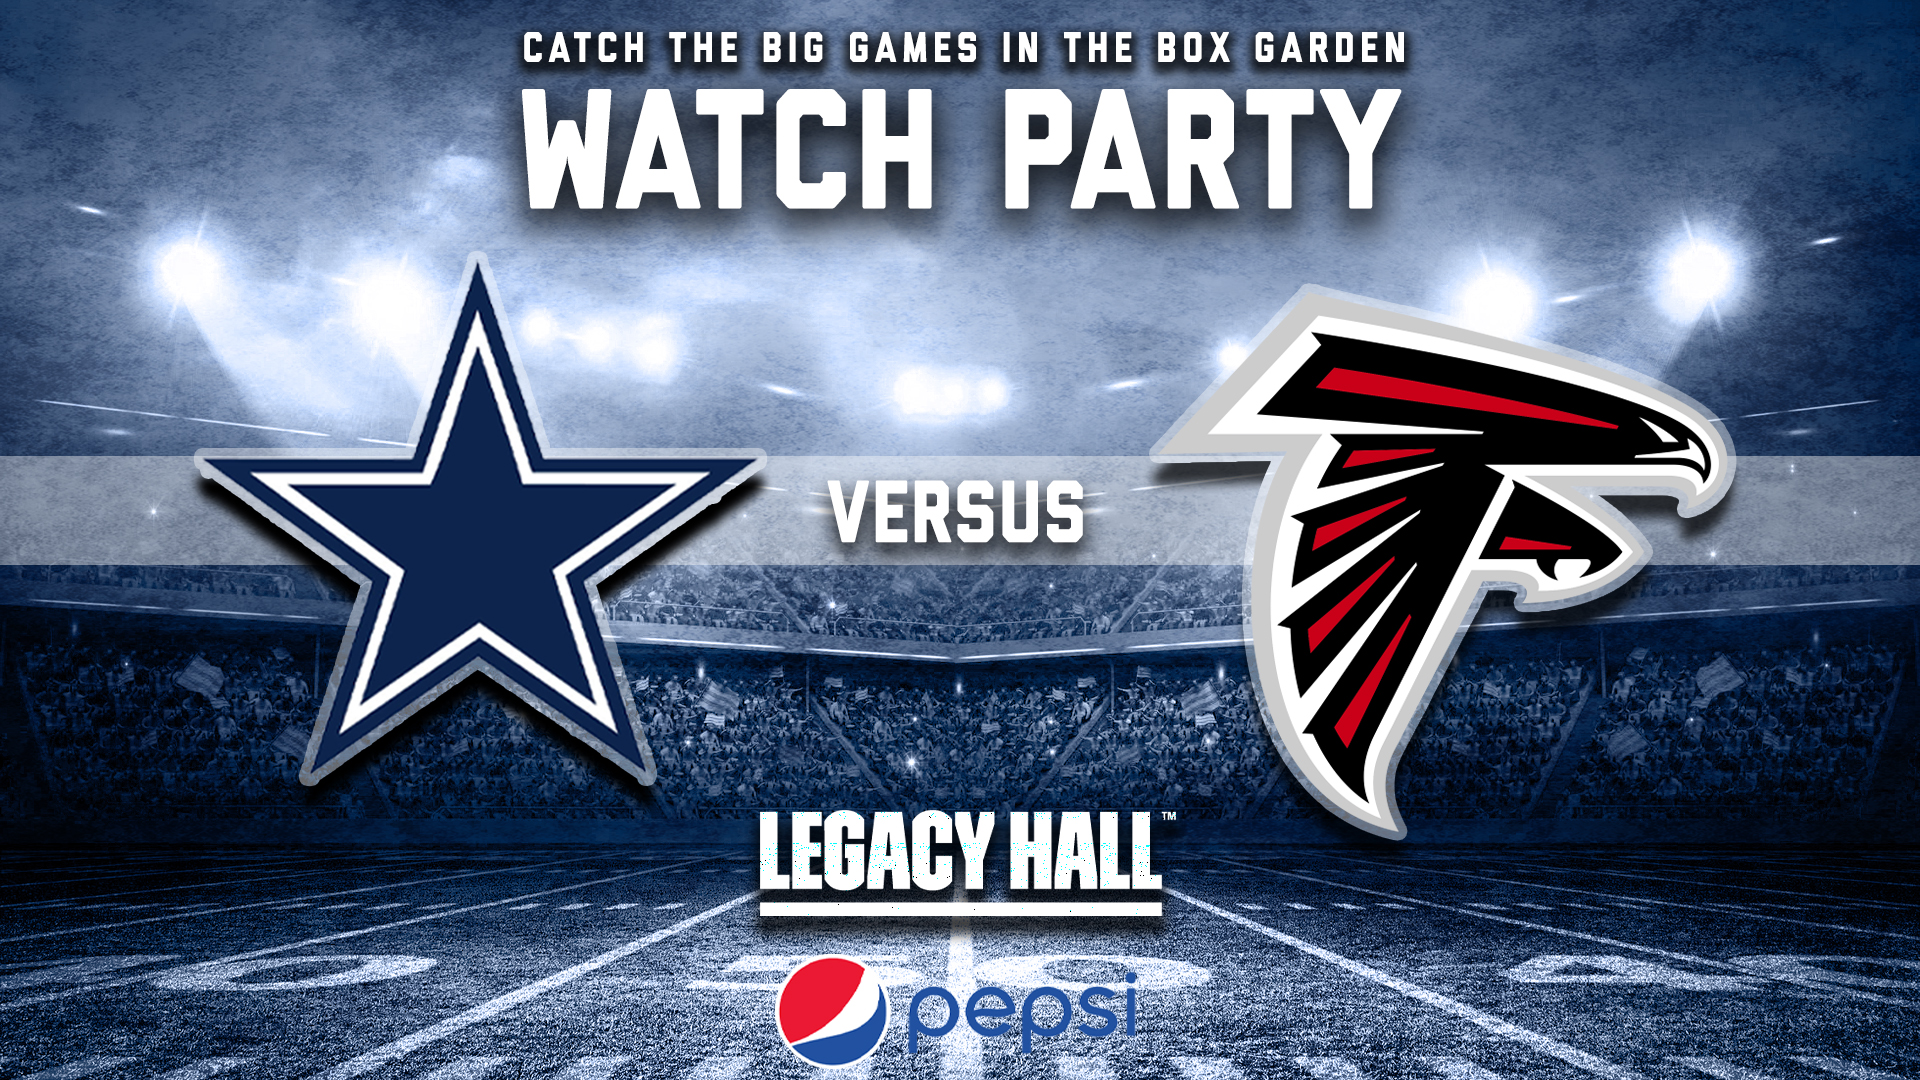 Promo image of Cowboys vs. Falcons Watch Party